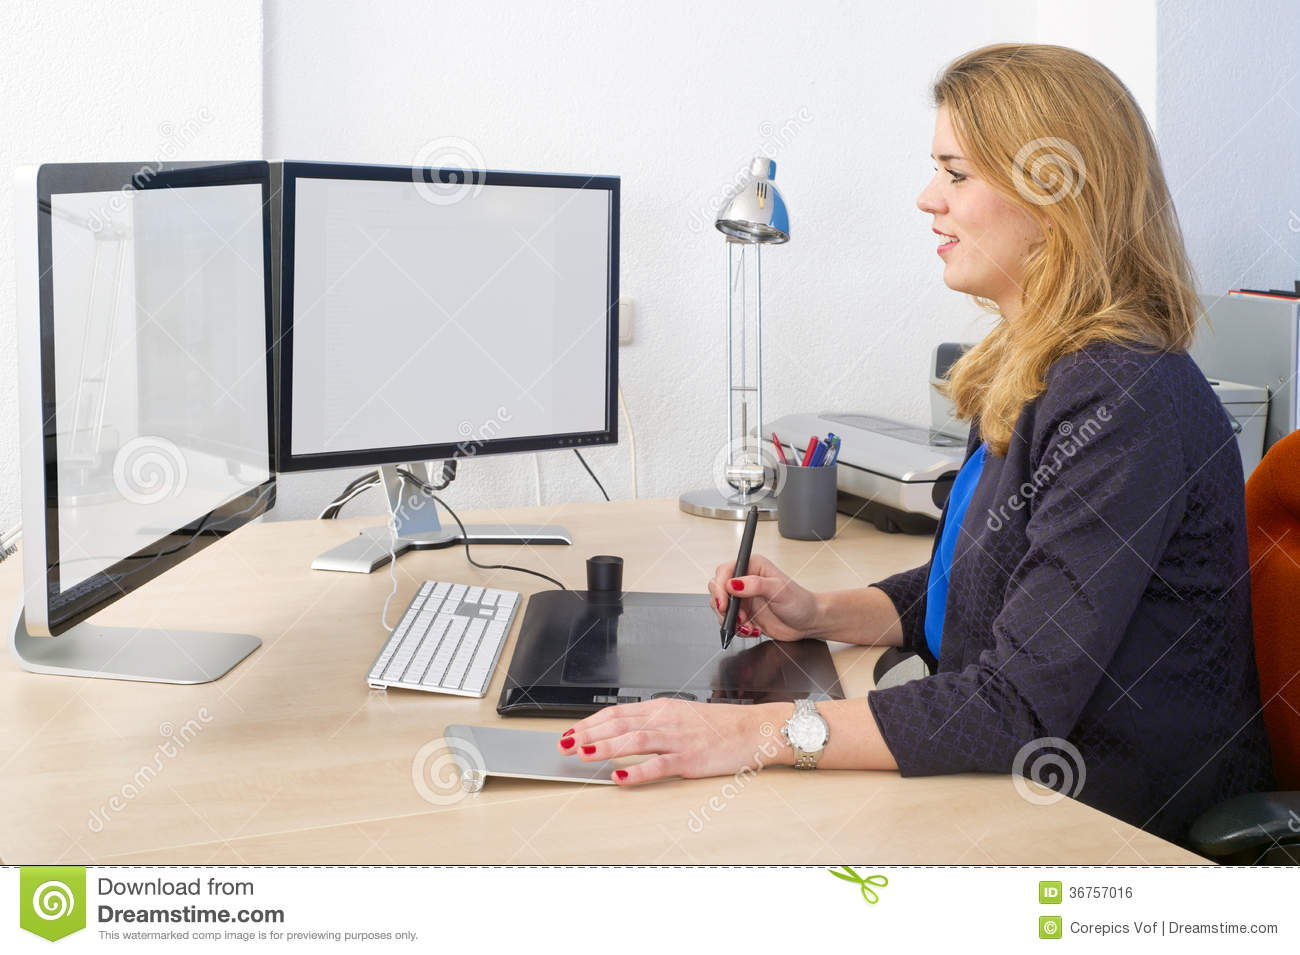 Creative Computer Desk Creative Office Work Royalty Free Stock Image Image